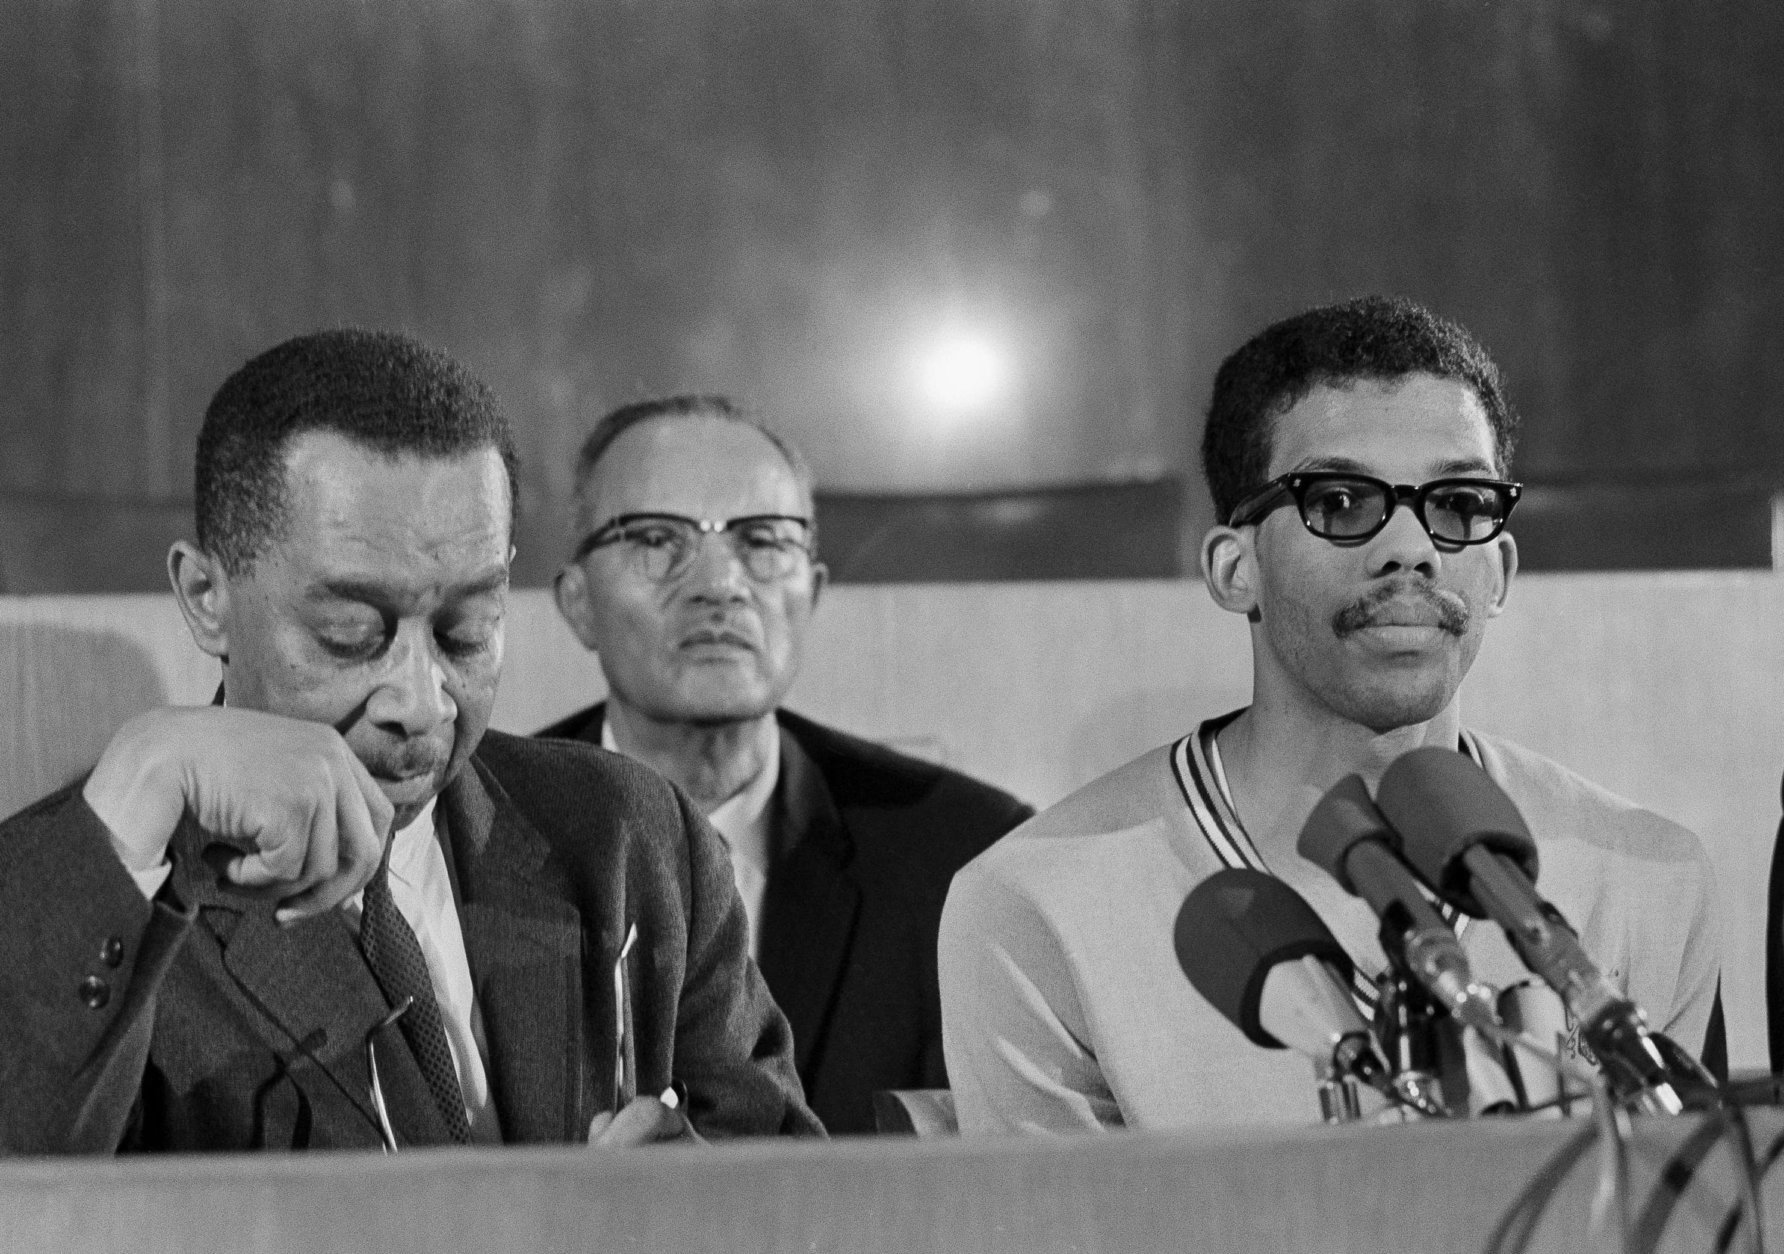 Dr. Kenneth Clark, New York psychologist and member of the board of trustees of Howard University, speaks at a news conference which student leaders in Washington, D.C., March 23, 1968. From left: Clark, Edward Brown, student council president, Tony Gittens and Q. T. Jackson. (AP Photo/Bob Schutz)